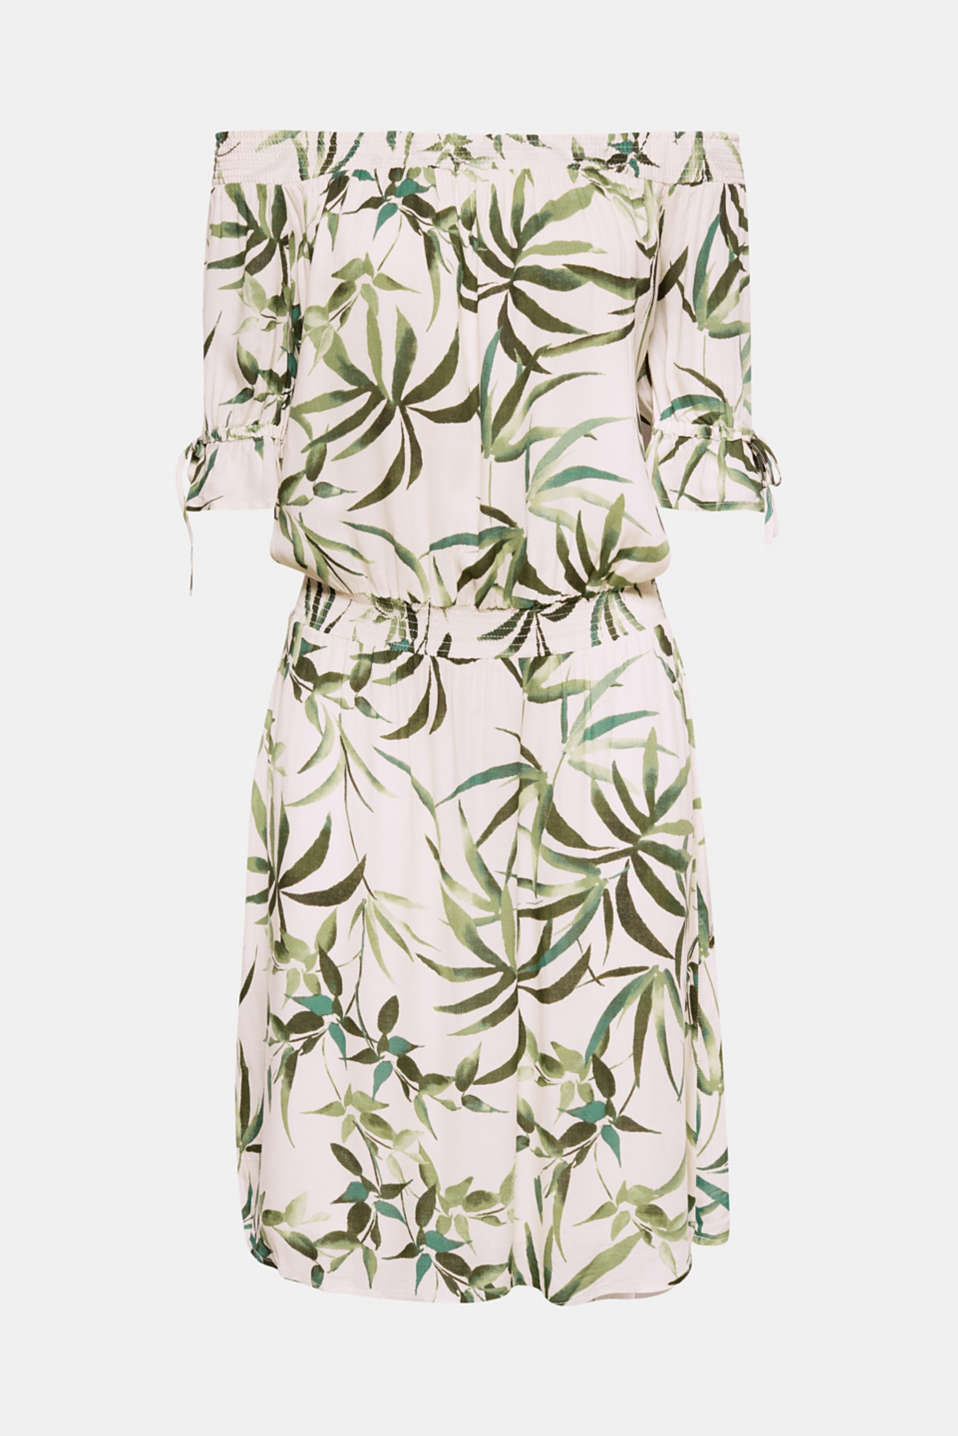 With its pretty sleeves, smocked waist and trendy leaf print, this stylish off-the-shoulder dress is sure to become your new favourite piece!